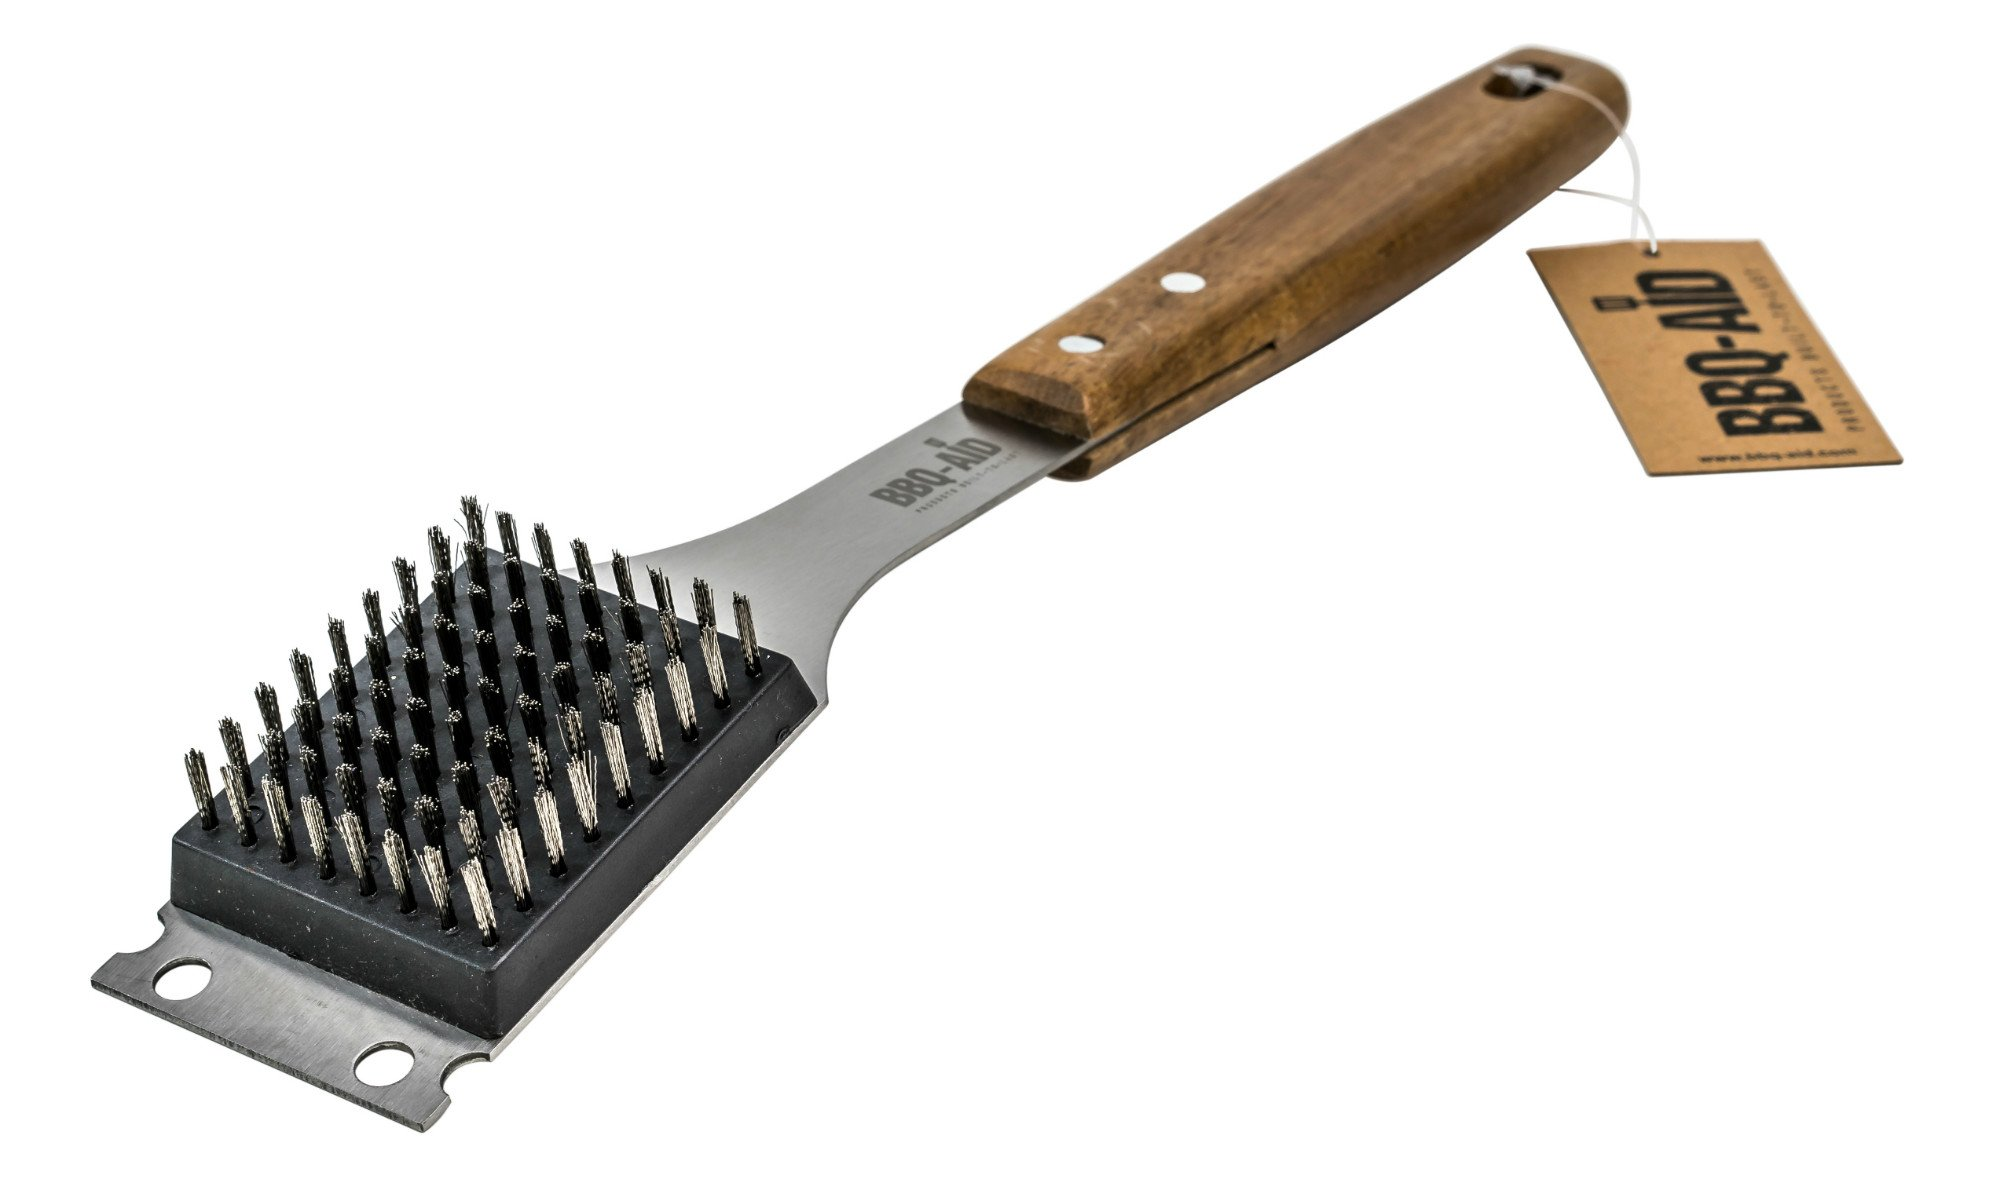 Barbecue Grill Brush and Scraper - Extended, Large Wooden Handle and Stainless Steel Bristles - No Scratch Cleaning for Any Grill: Char Broil & Ceramic - BBQ-Aid by BBQ-Aid